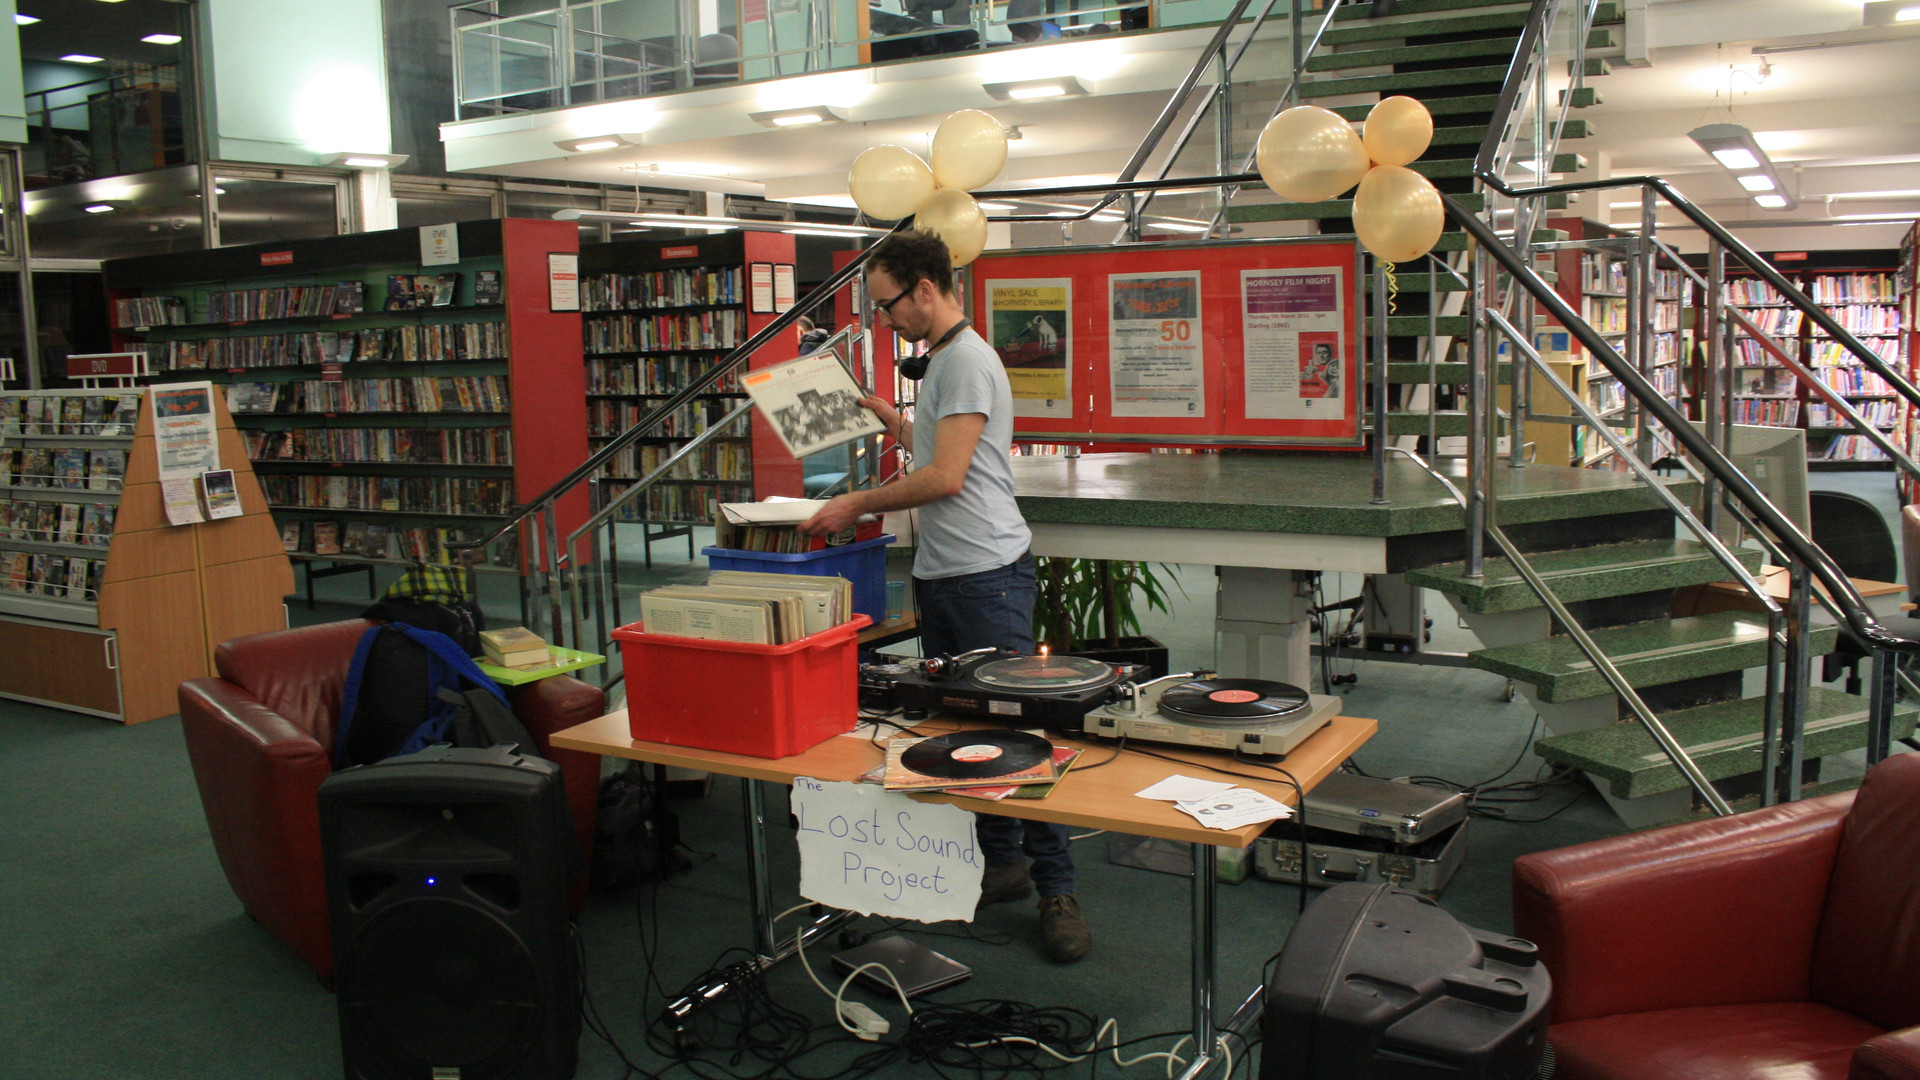 DJ IN A LIBRARY